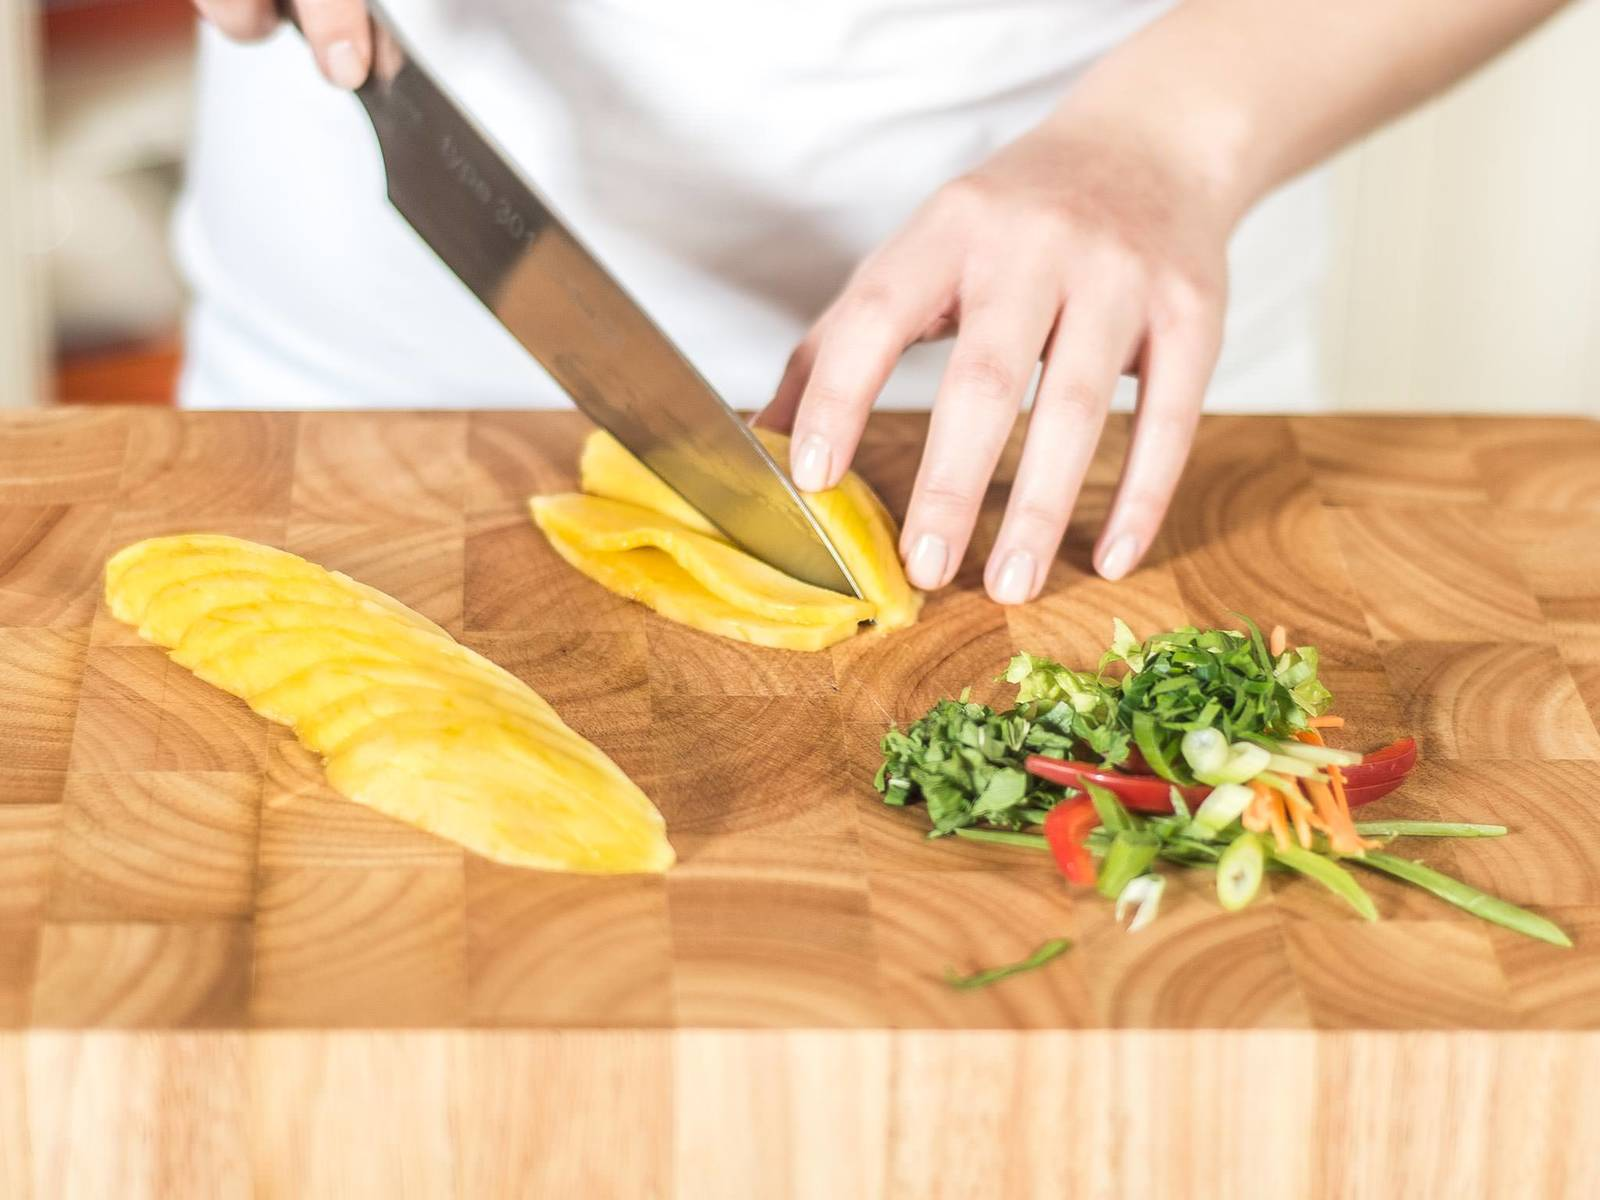 Slice the carrot, lettuce heart, snow peas, green onion, celery, bell pepper, mint, and parsley into fine strips. Peel the mango, remove the pit, and cut into slices.